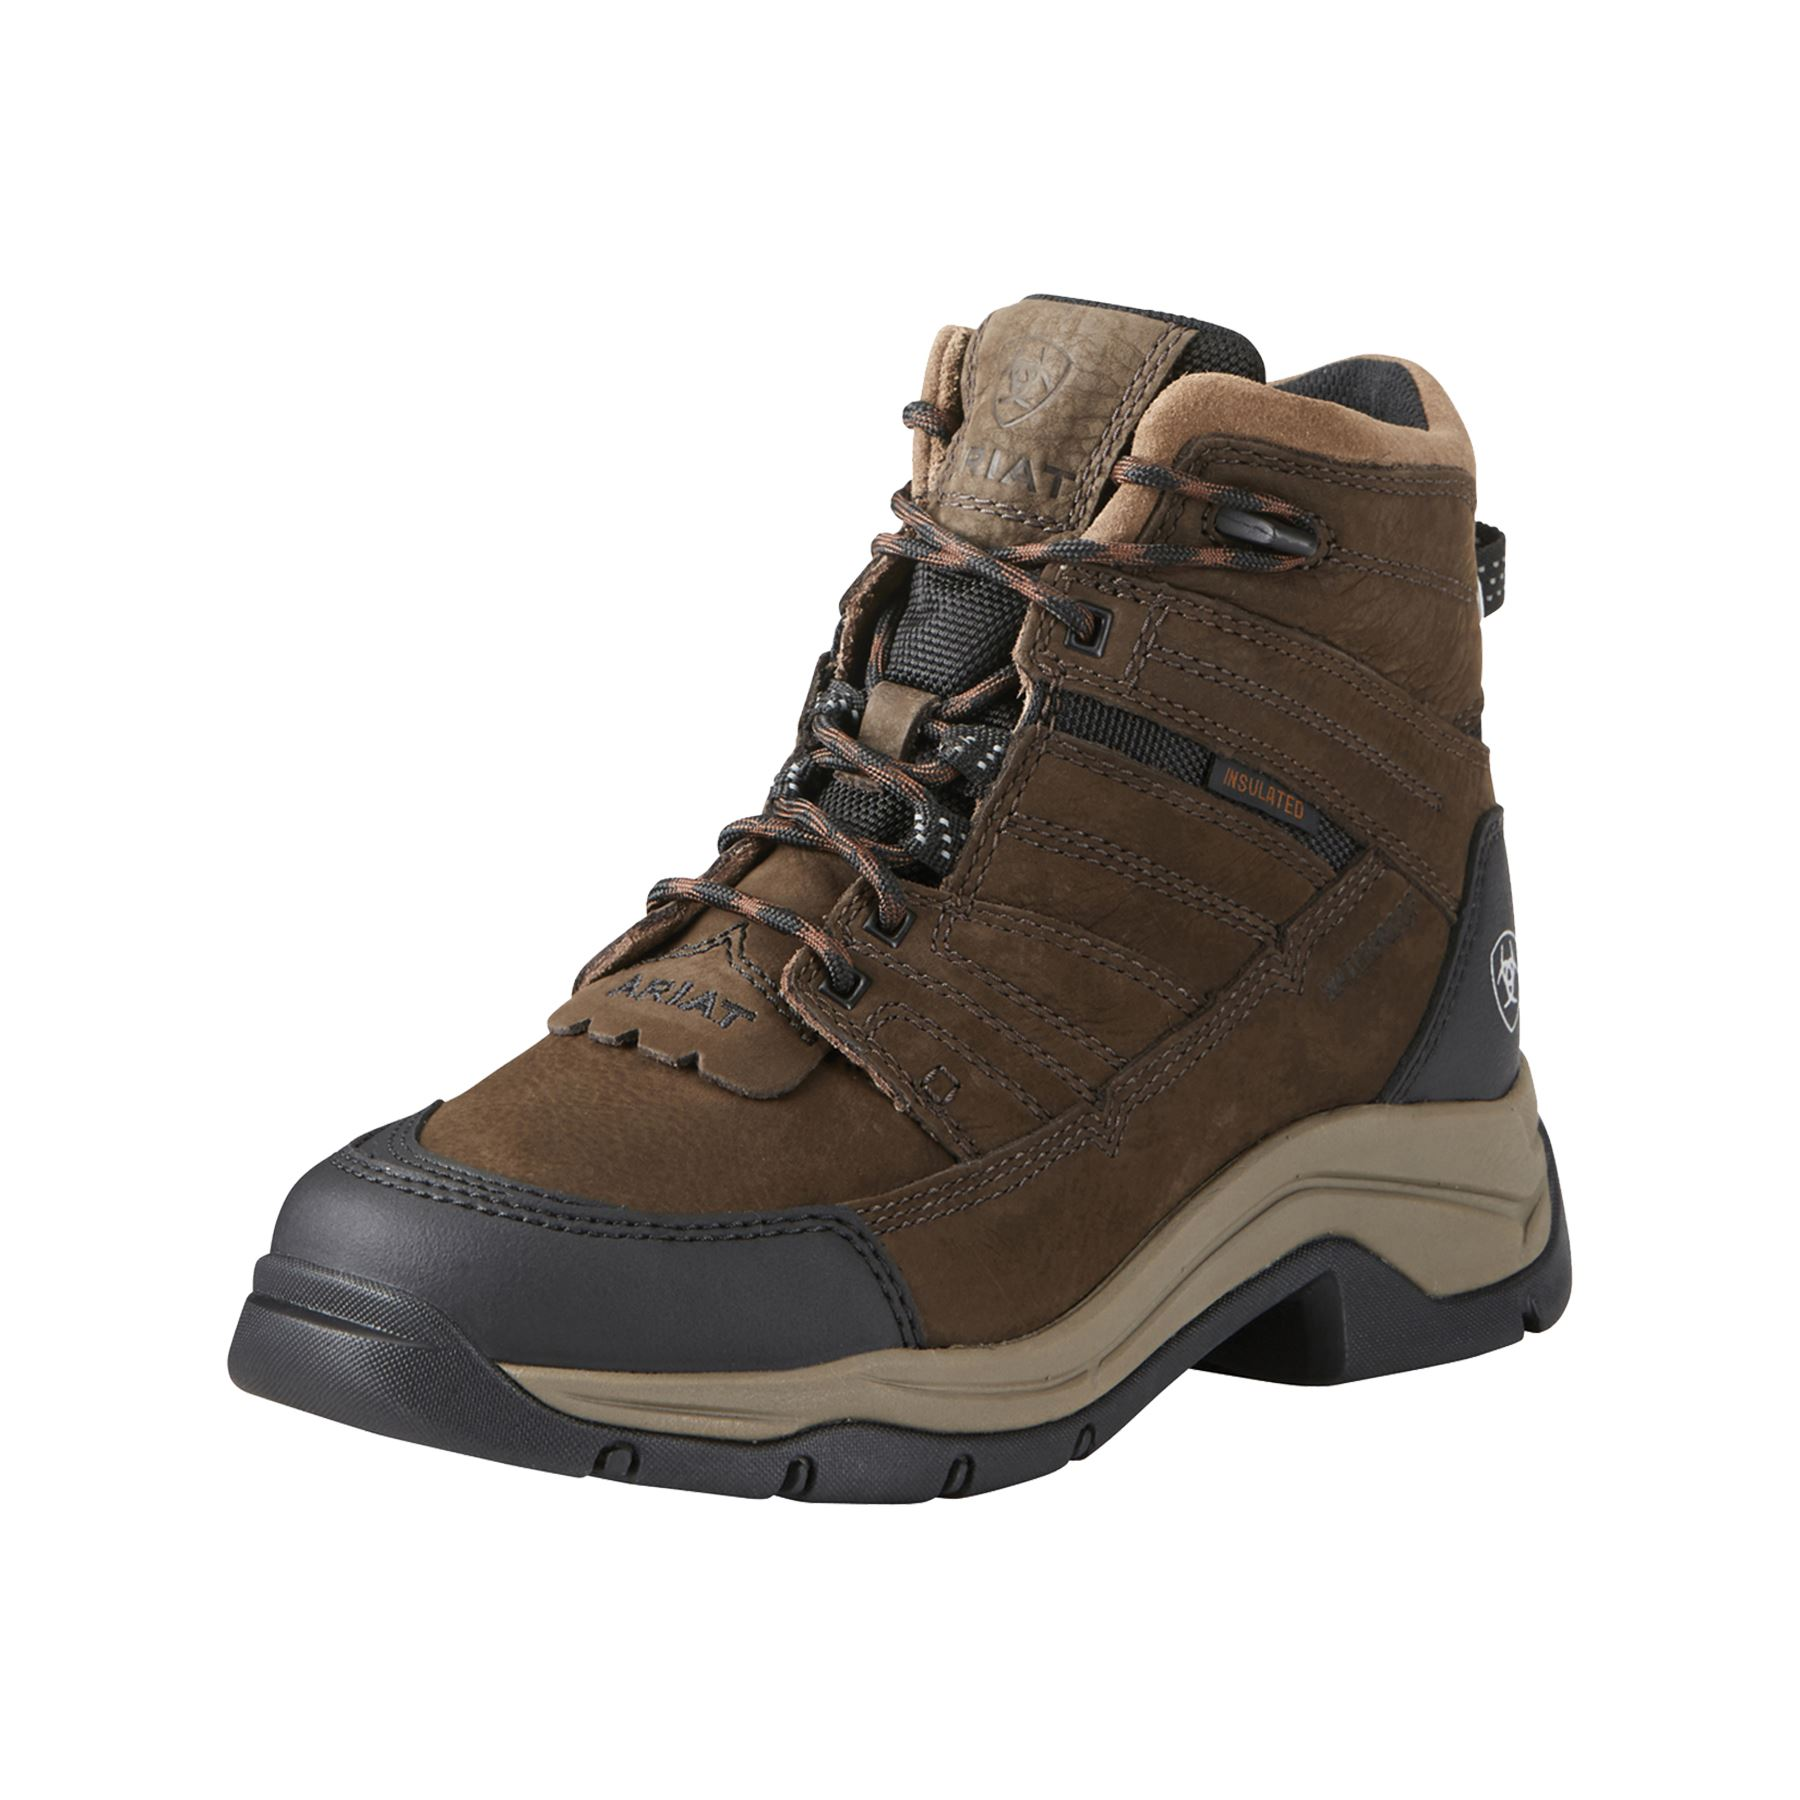 Ariat Ladies Terrain Pro H20 Insulated Boot In Stable